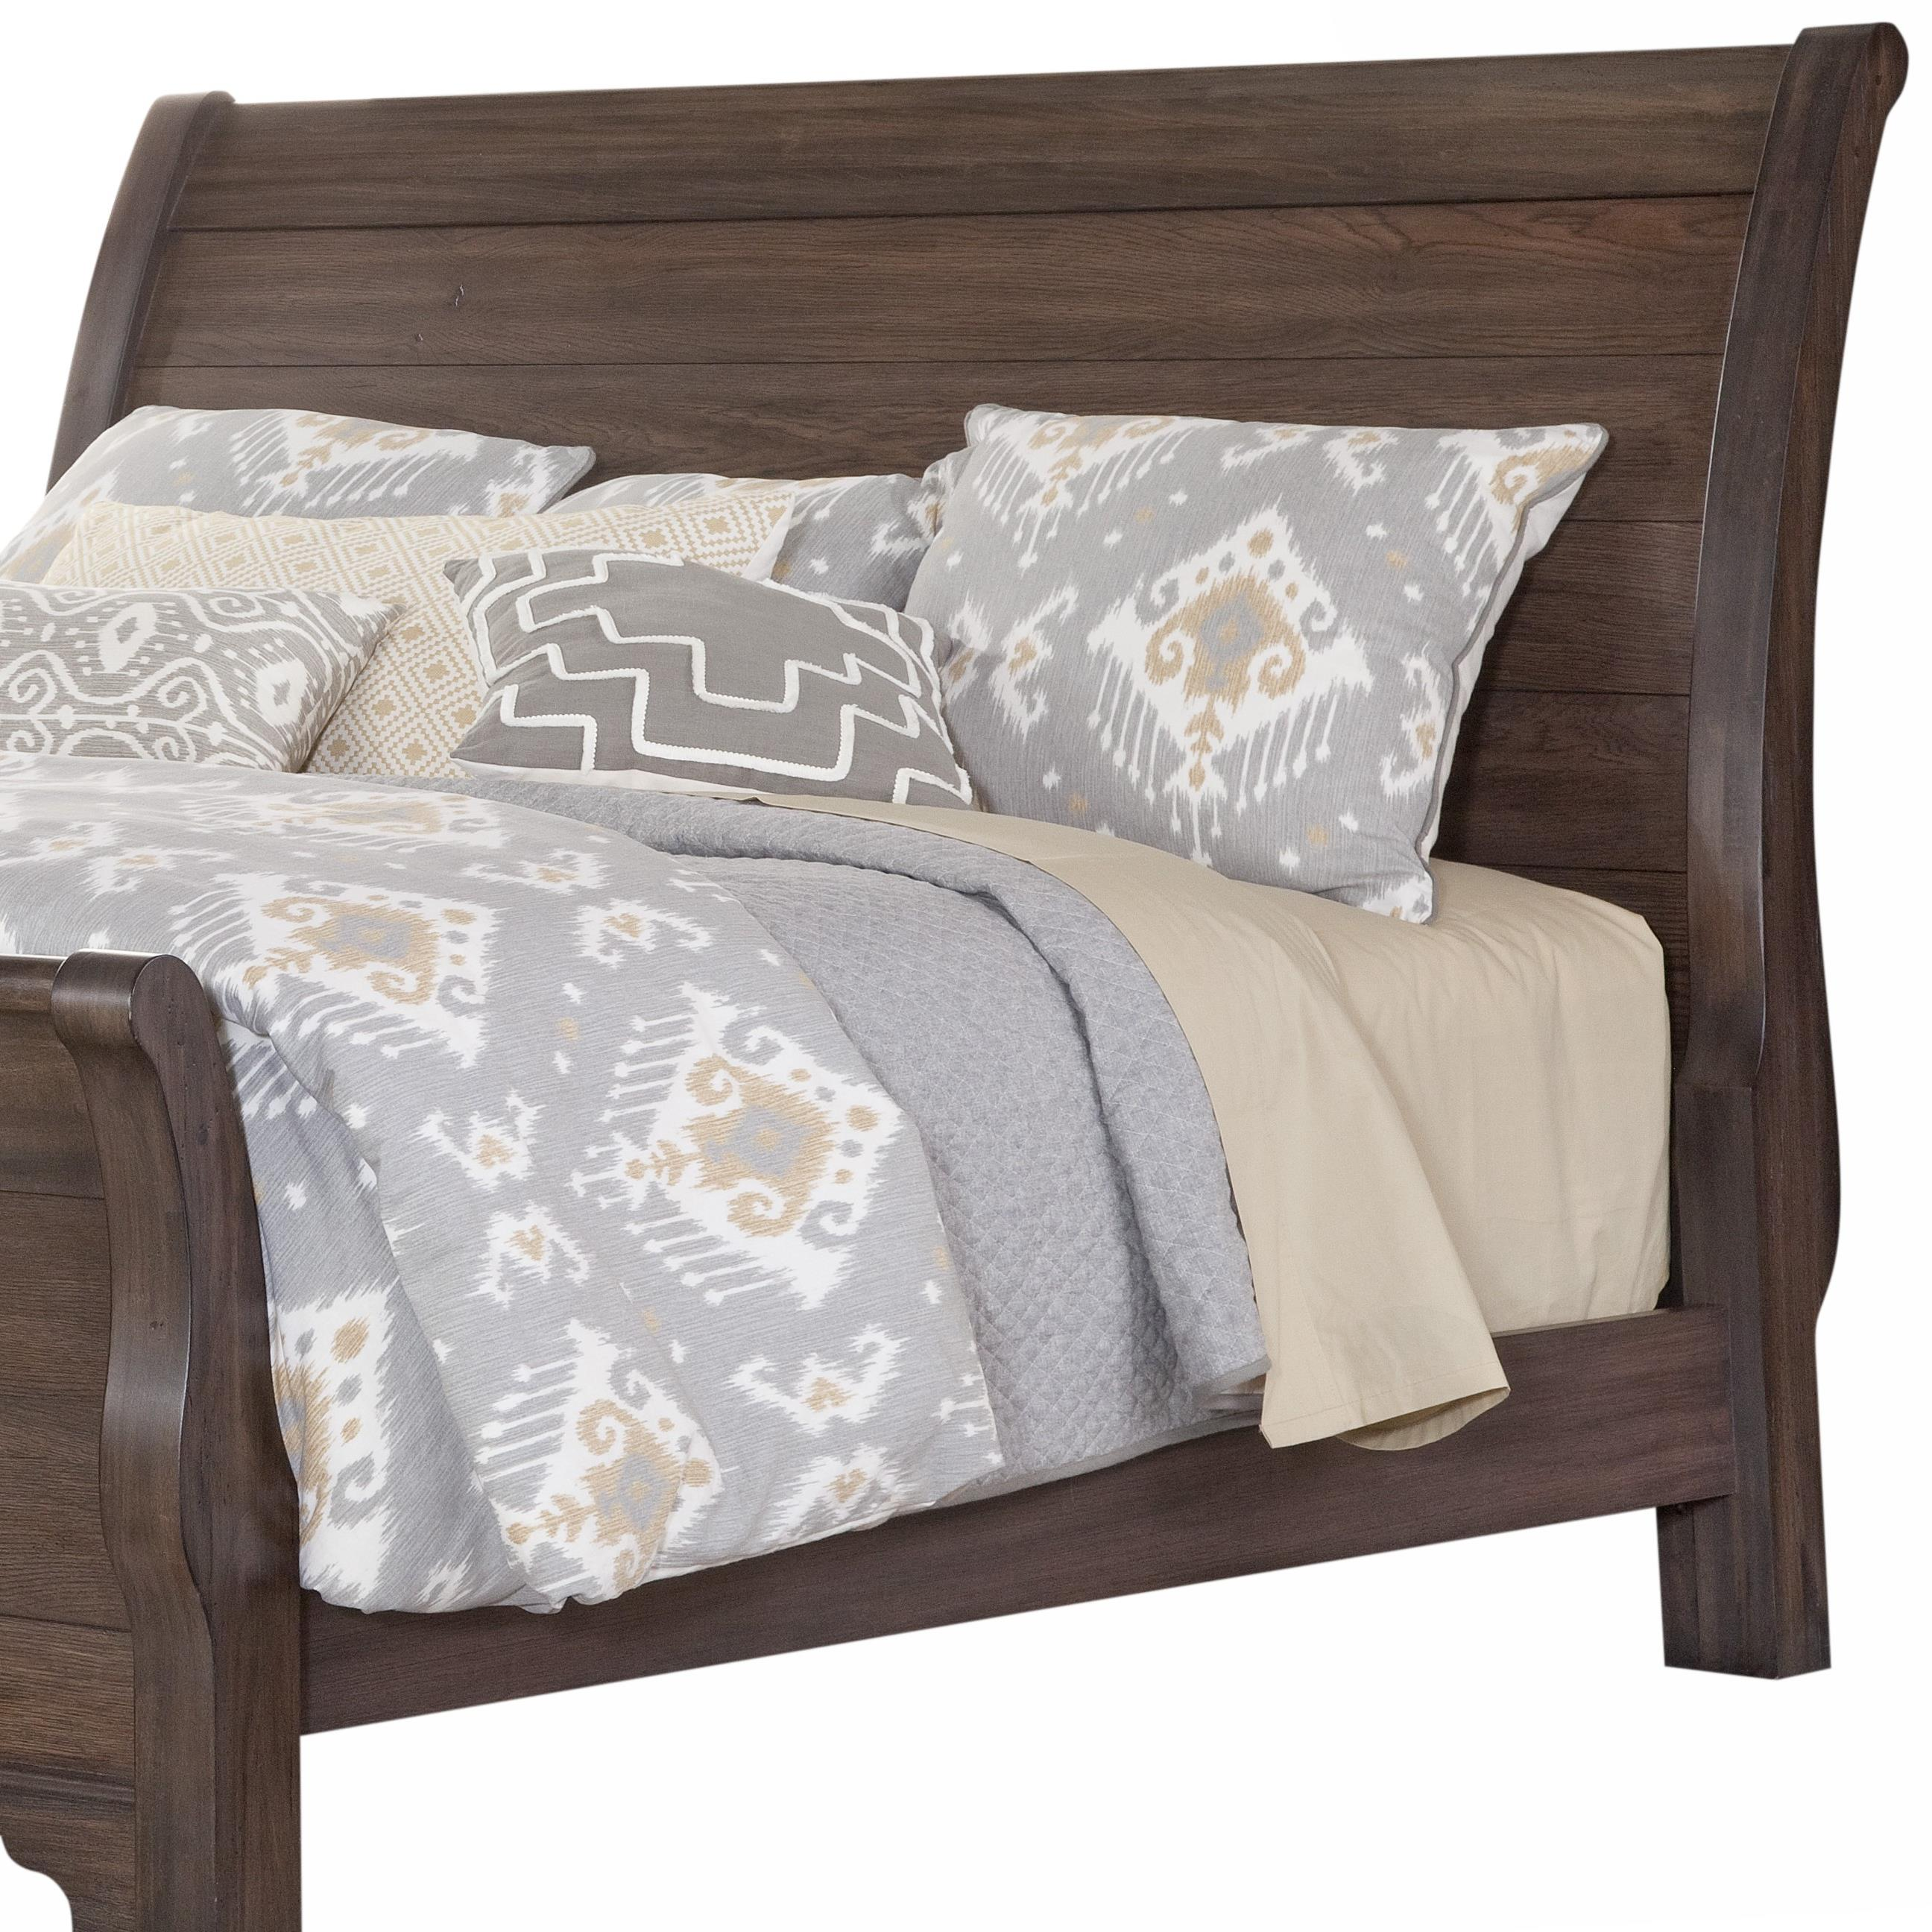 Vaughan Bassett Whiskey Barrel Queen Sleigh Headboard - Item Number: 816-553